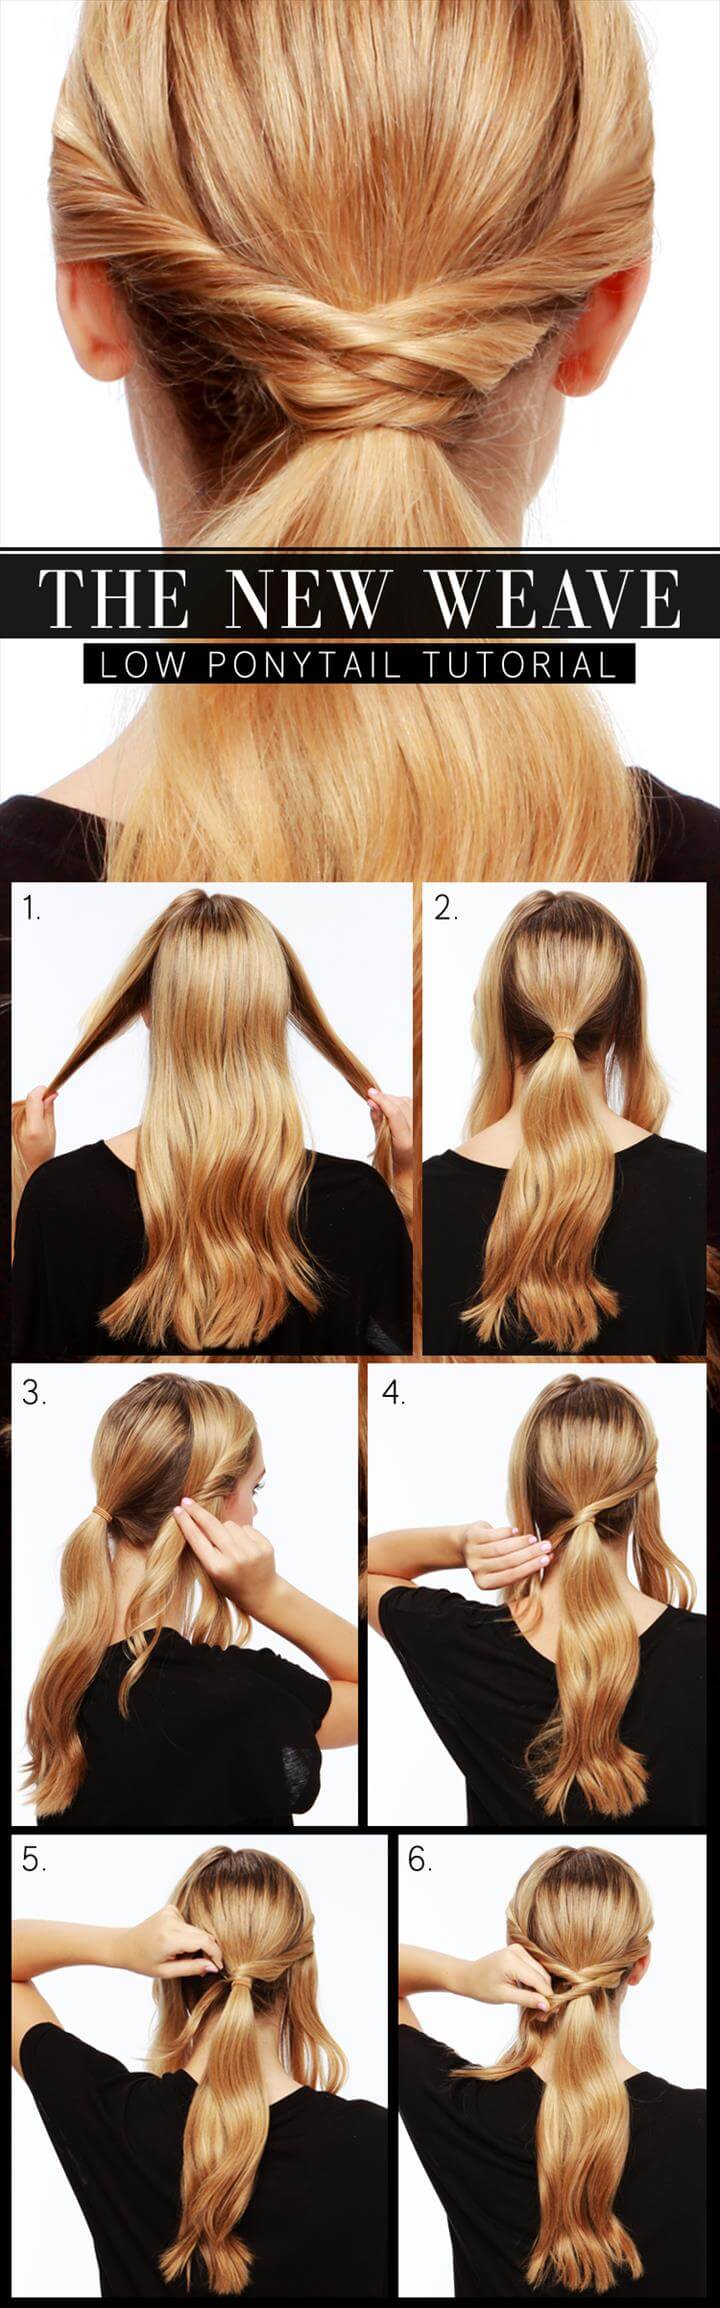 stylish new weave low ponytail hairstyle